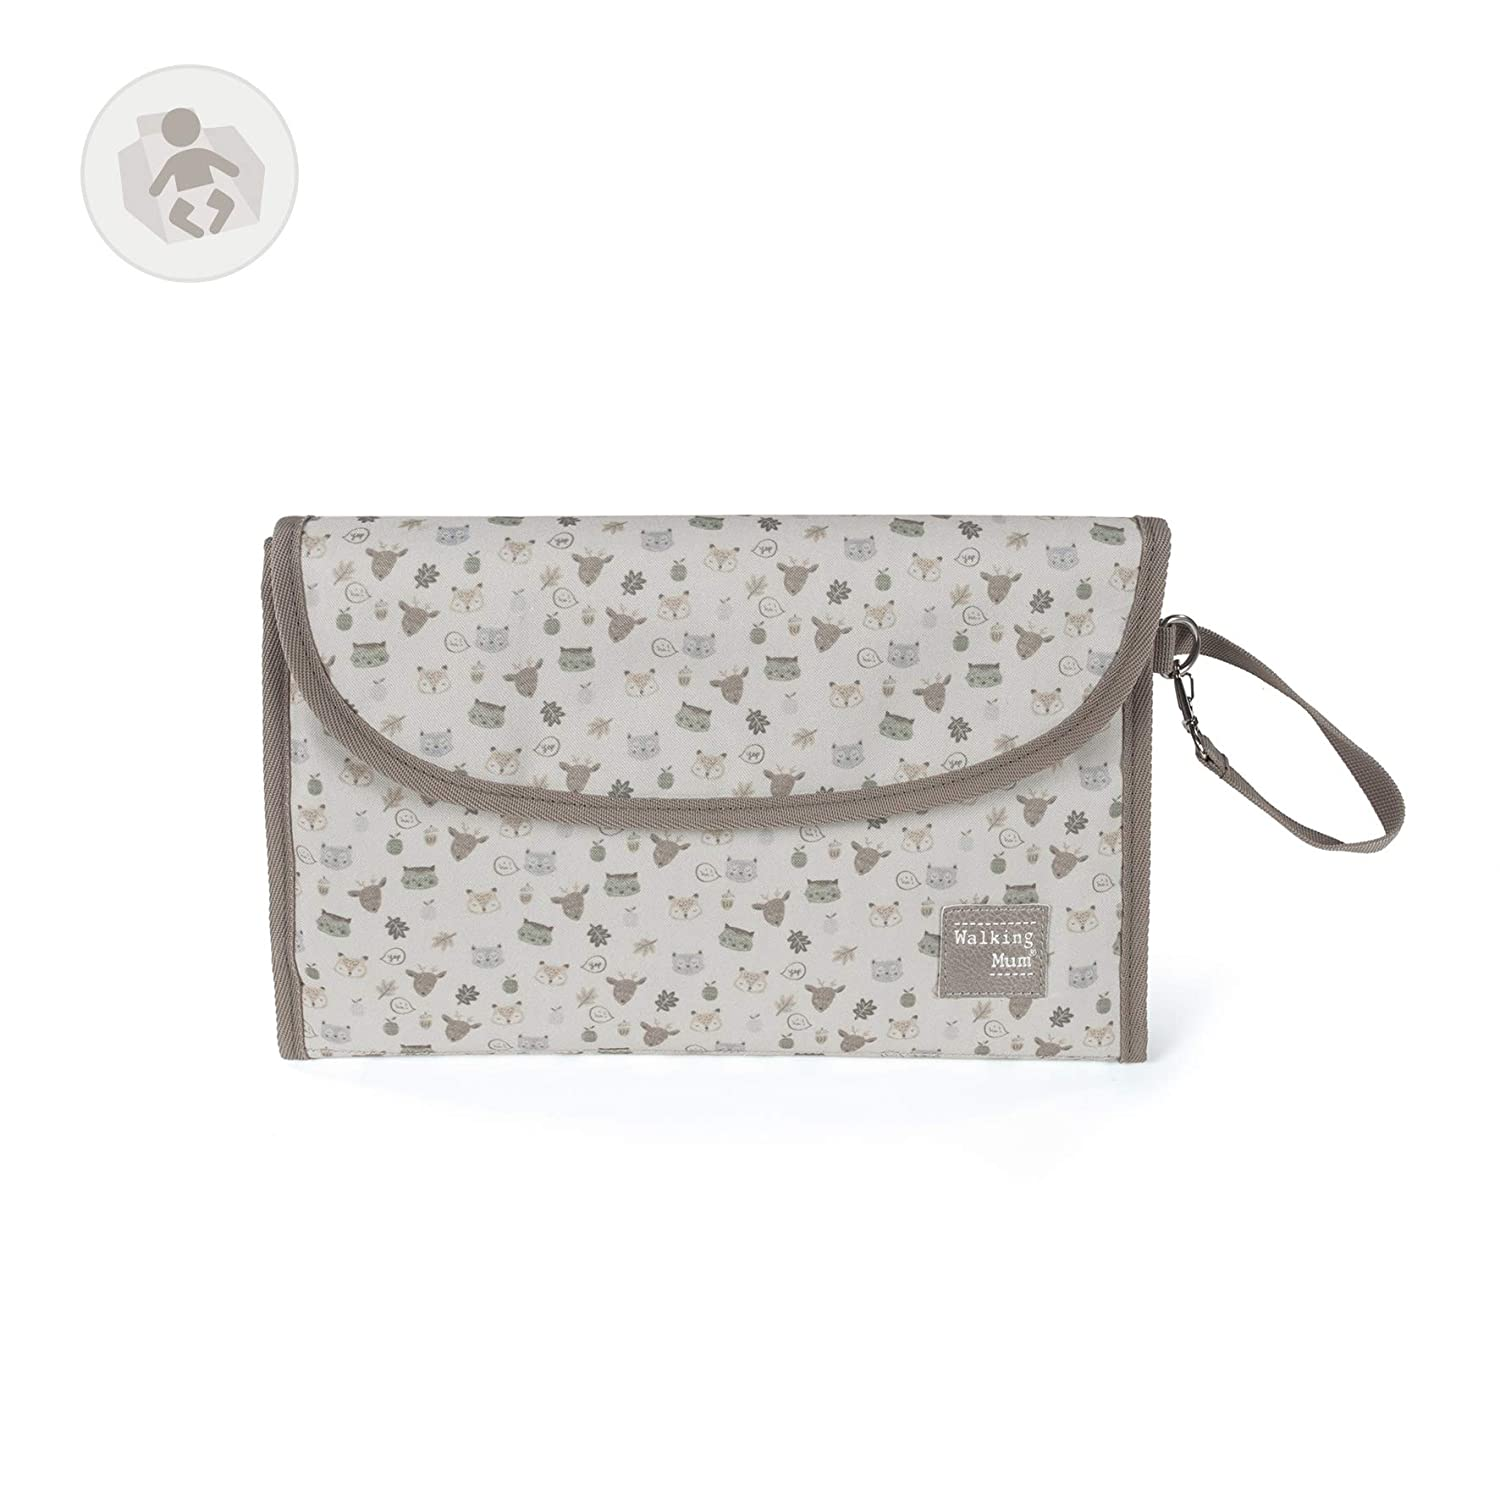 Walking Mum 36181 Cambiador//organizador happy animals unisex ha